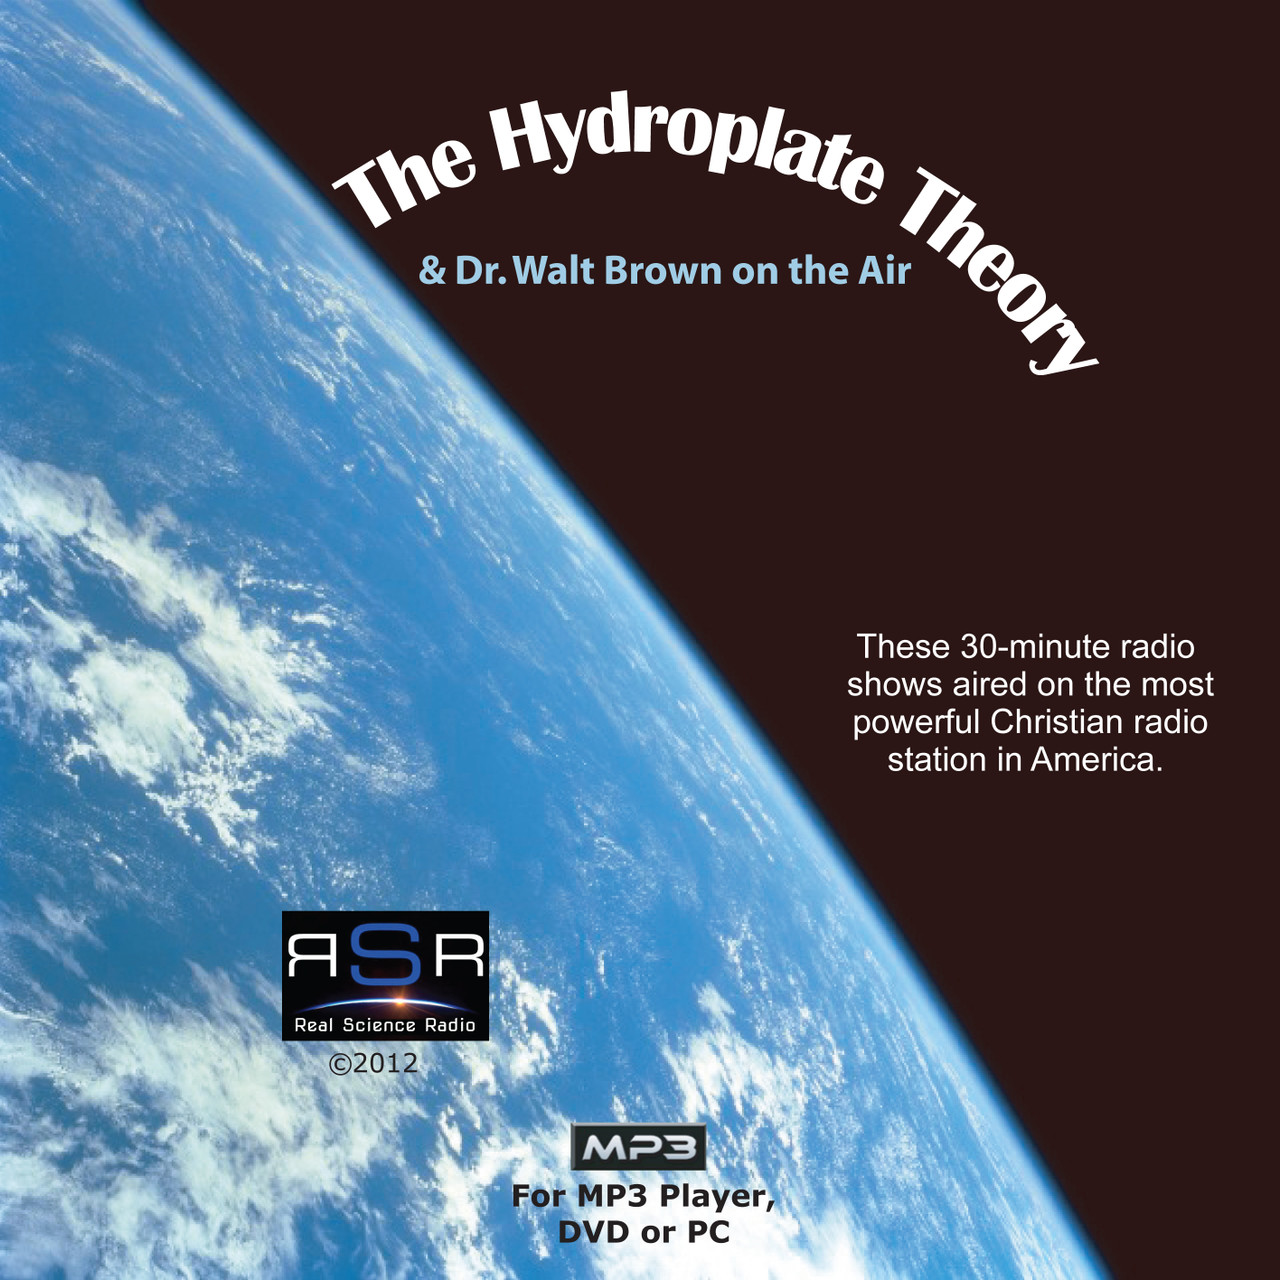 Hydroplate Theory interviews on RSR